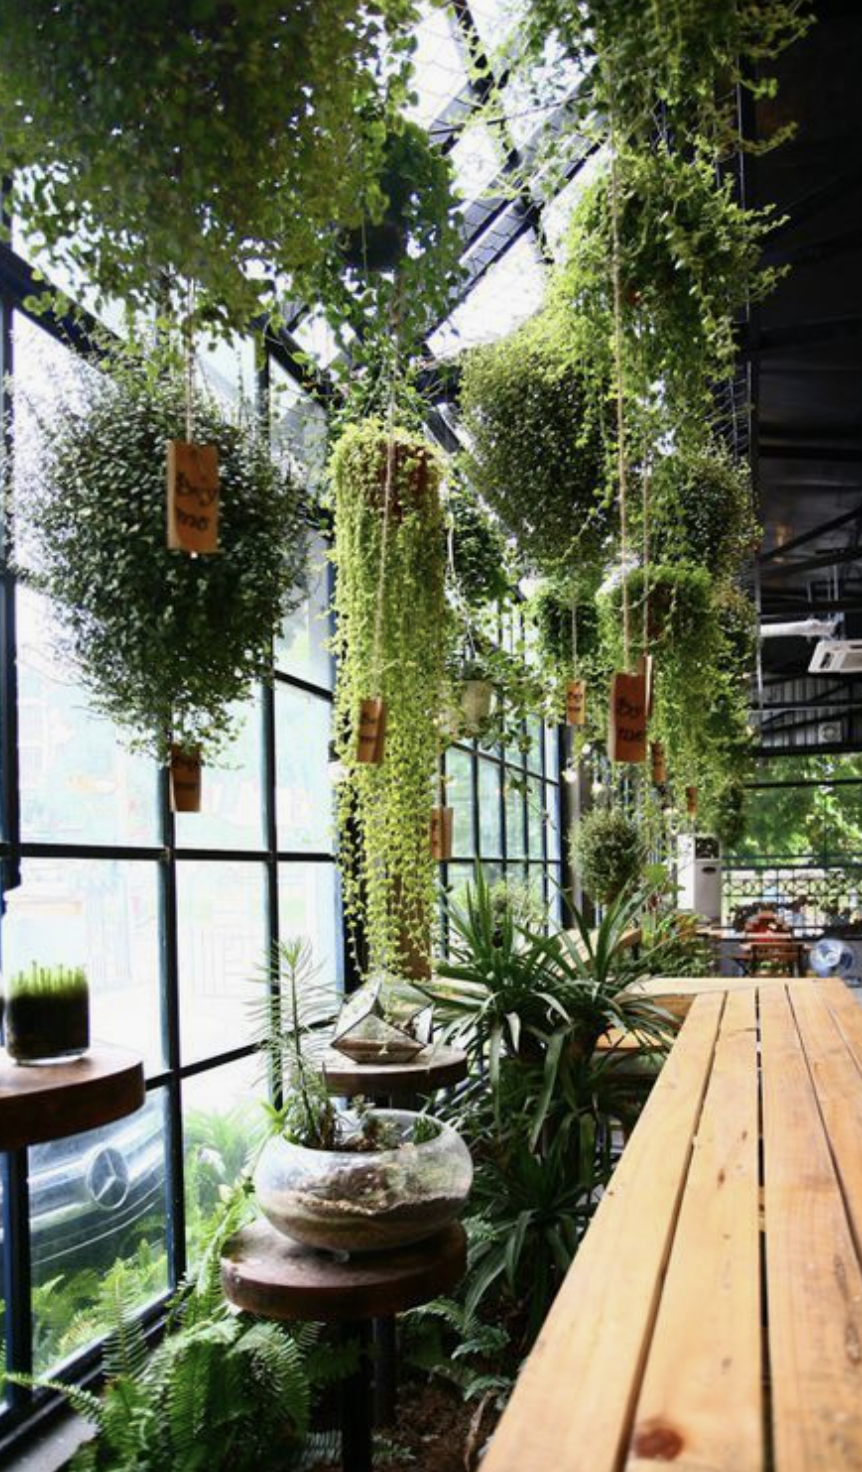 Interior Atriums - We can work with you in your exisitng space or with your builder/Architect on the design and incorporation of your own interior atrium garden. We work with specialised atrium horticulturists in creating that perfect climate conditions for your space. We encourage atriums as a consideration for those looking to inorporate a space for meditation, yoga or just simply to enjoy feeling connected to mother nature.